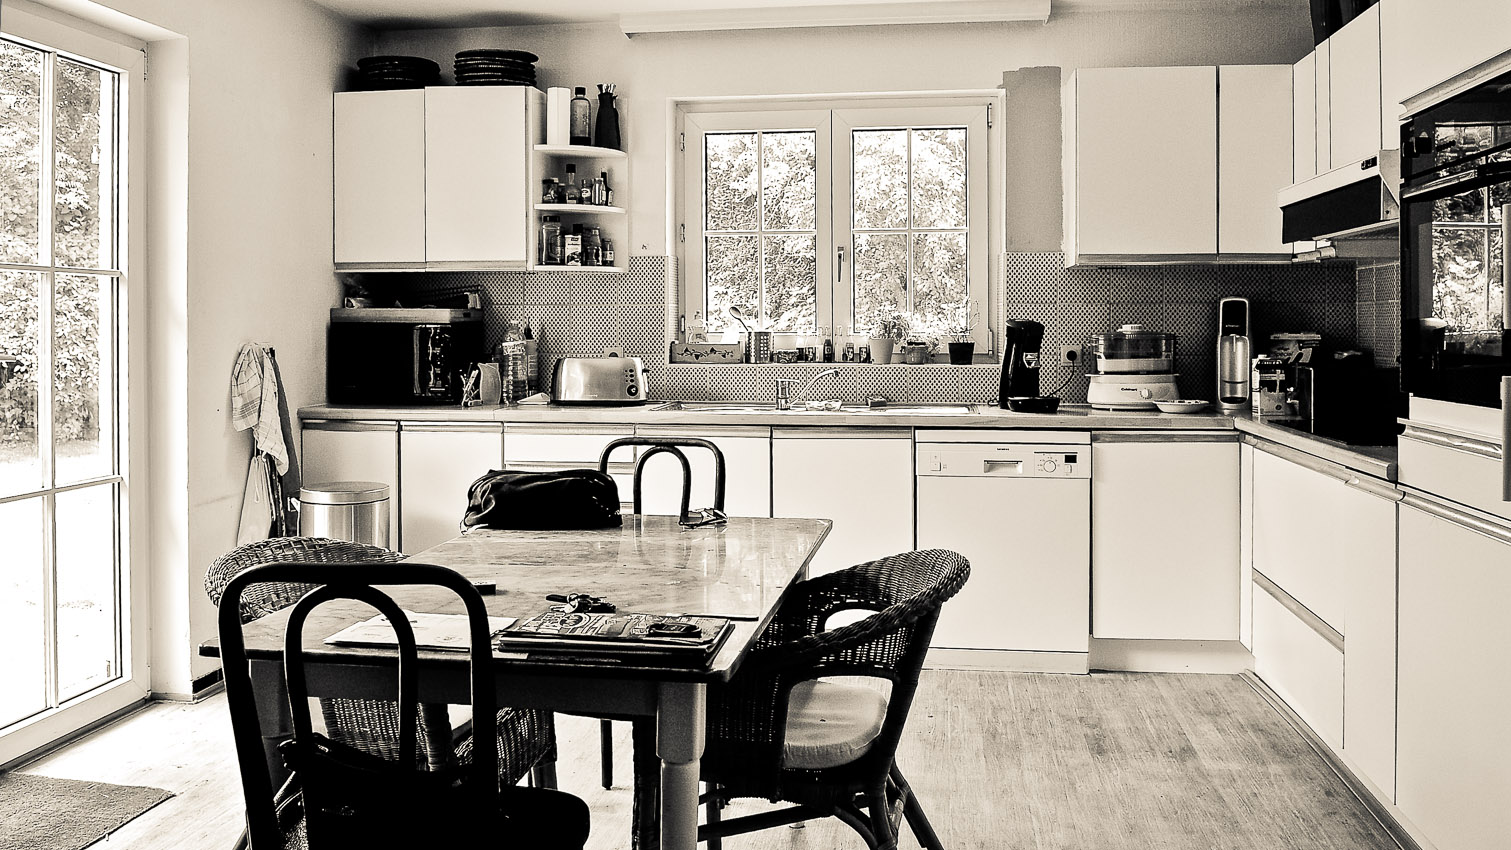 13s-cuisine-kitchen-location-vente-decors-film-cinema-photo-belgium-bruxelles